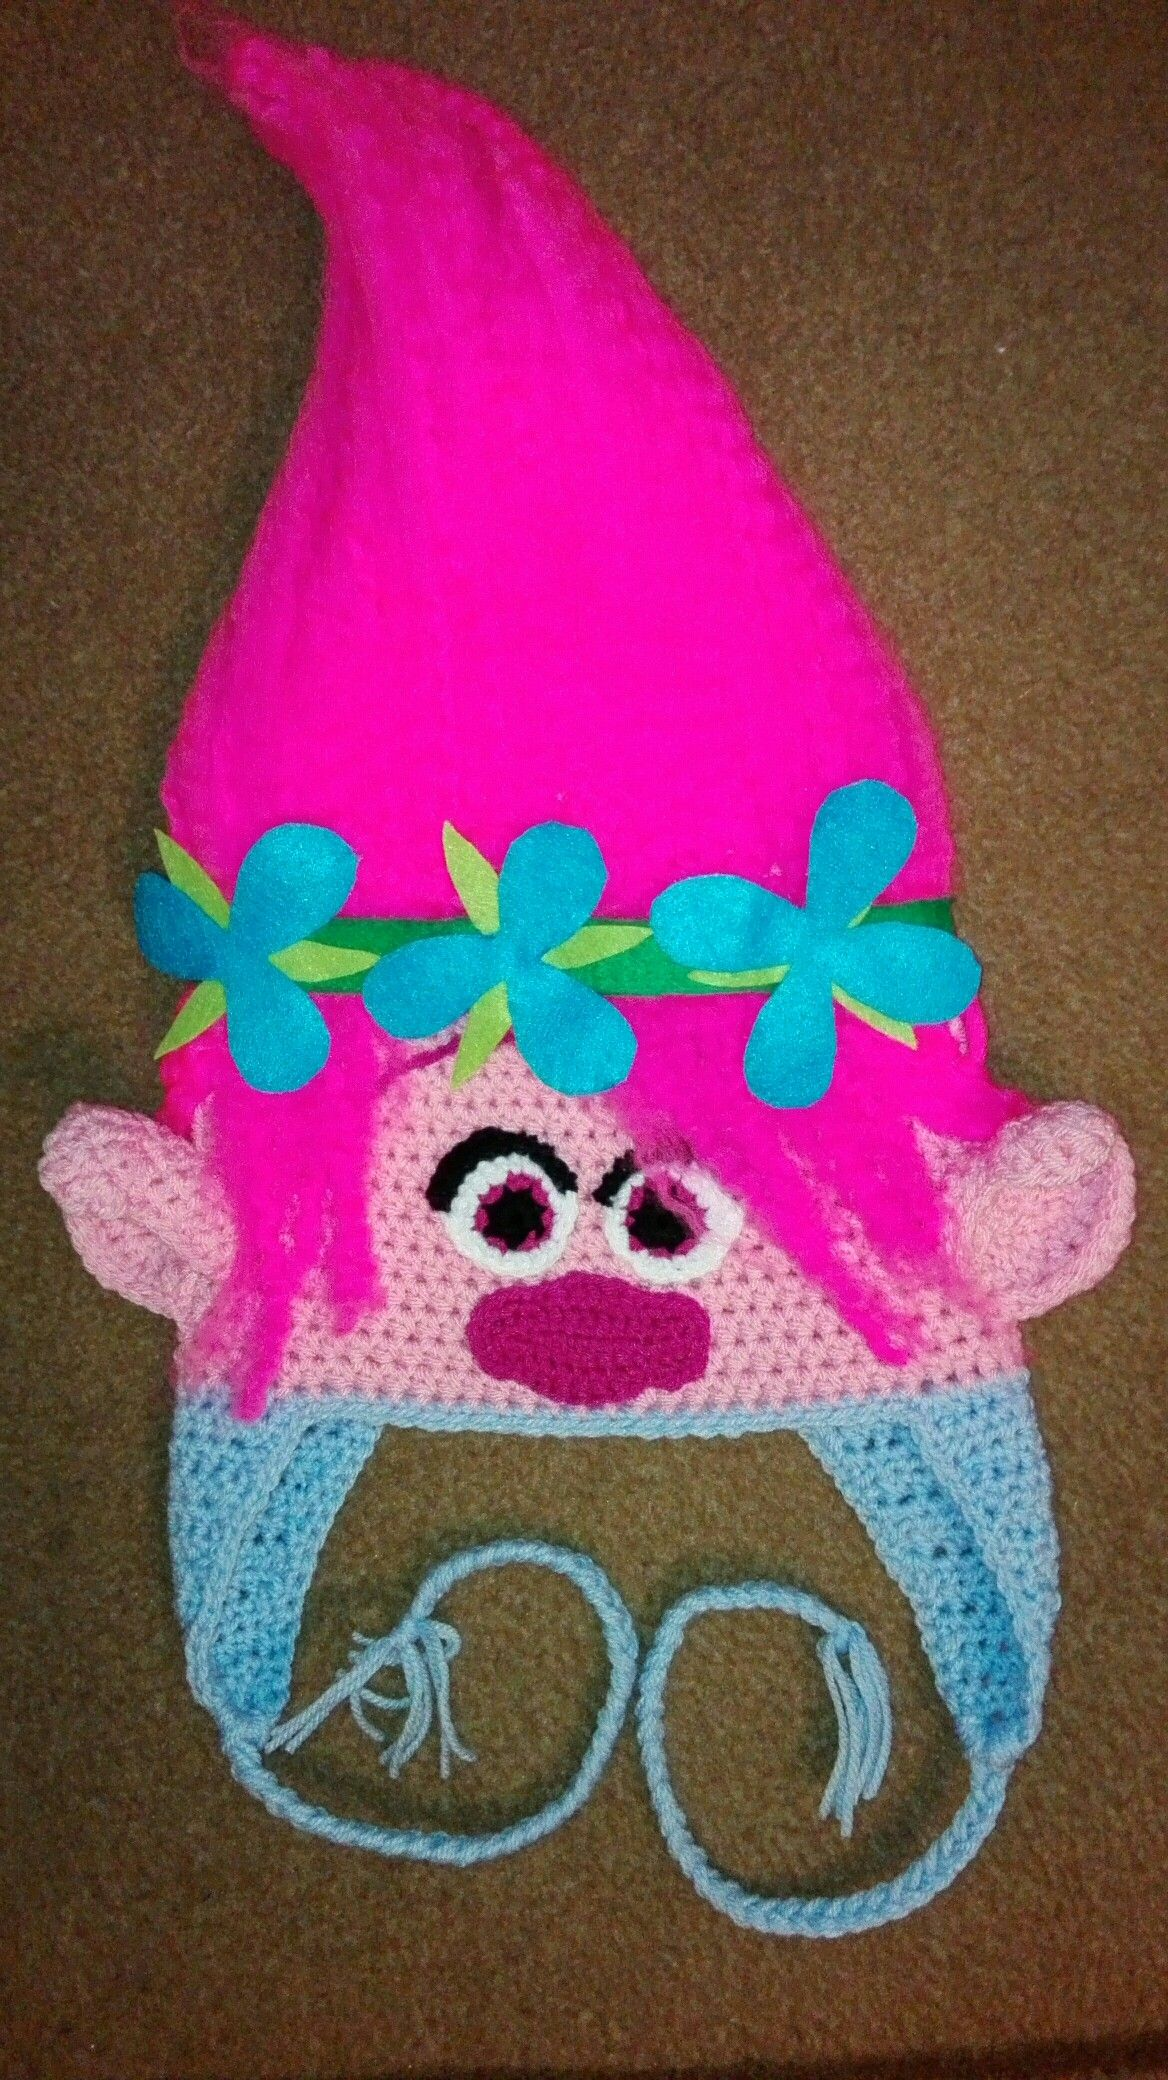 Crochet Pattern For Troll Hat : Poppy troll crochet hat CROCHET Pinterest Crochet ...